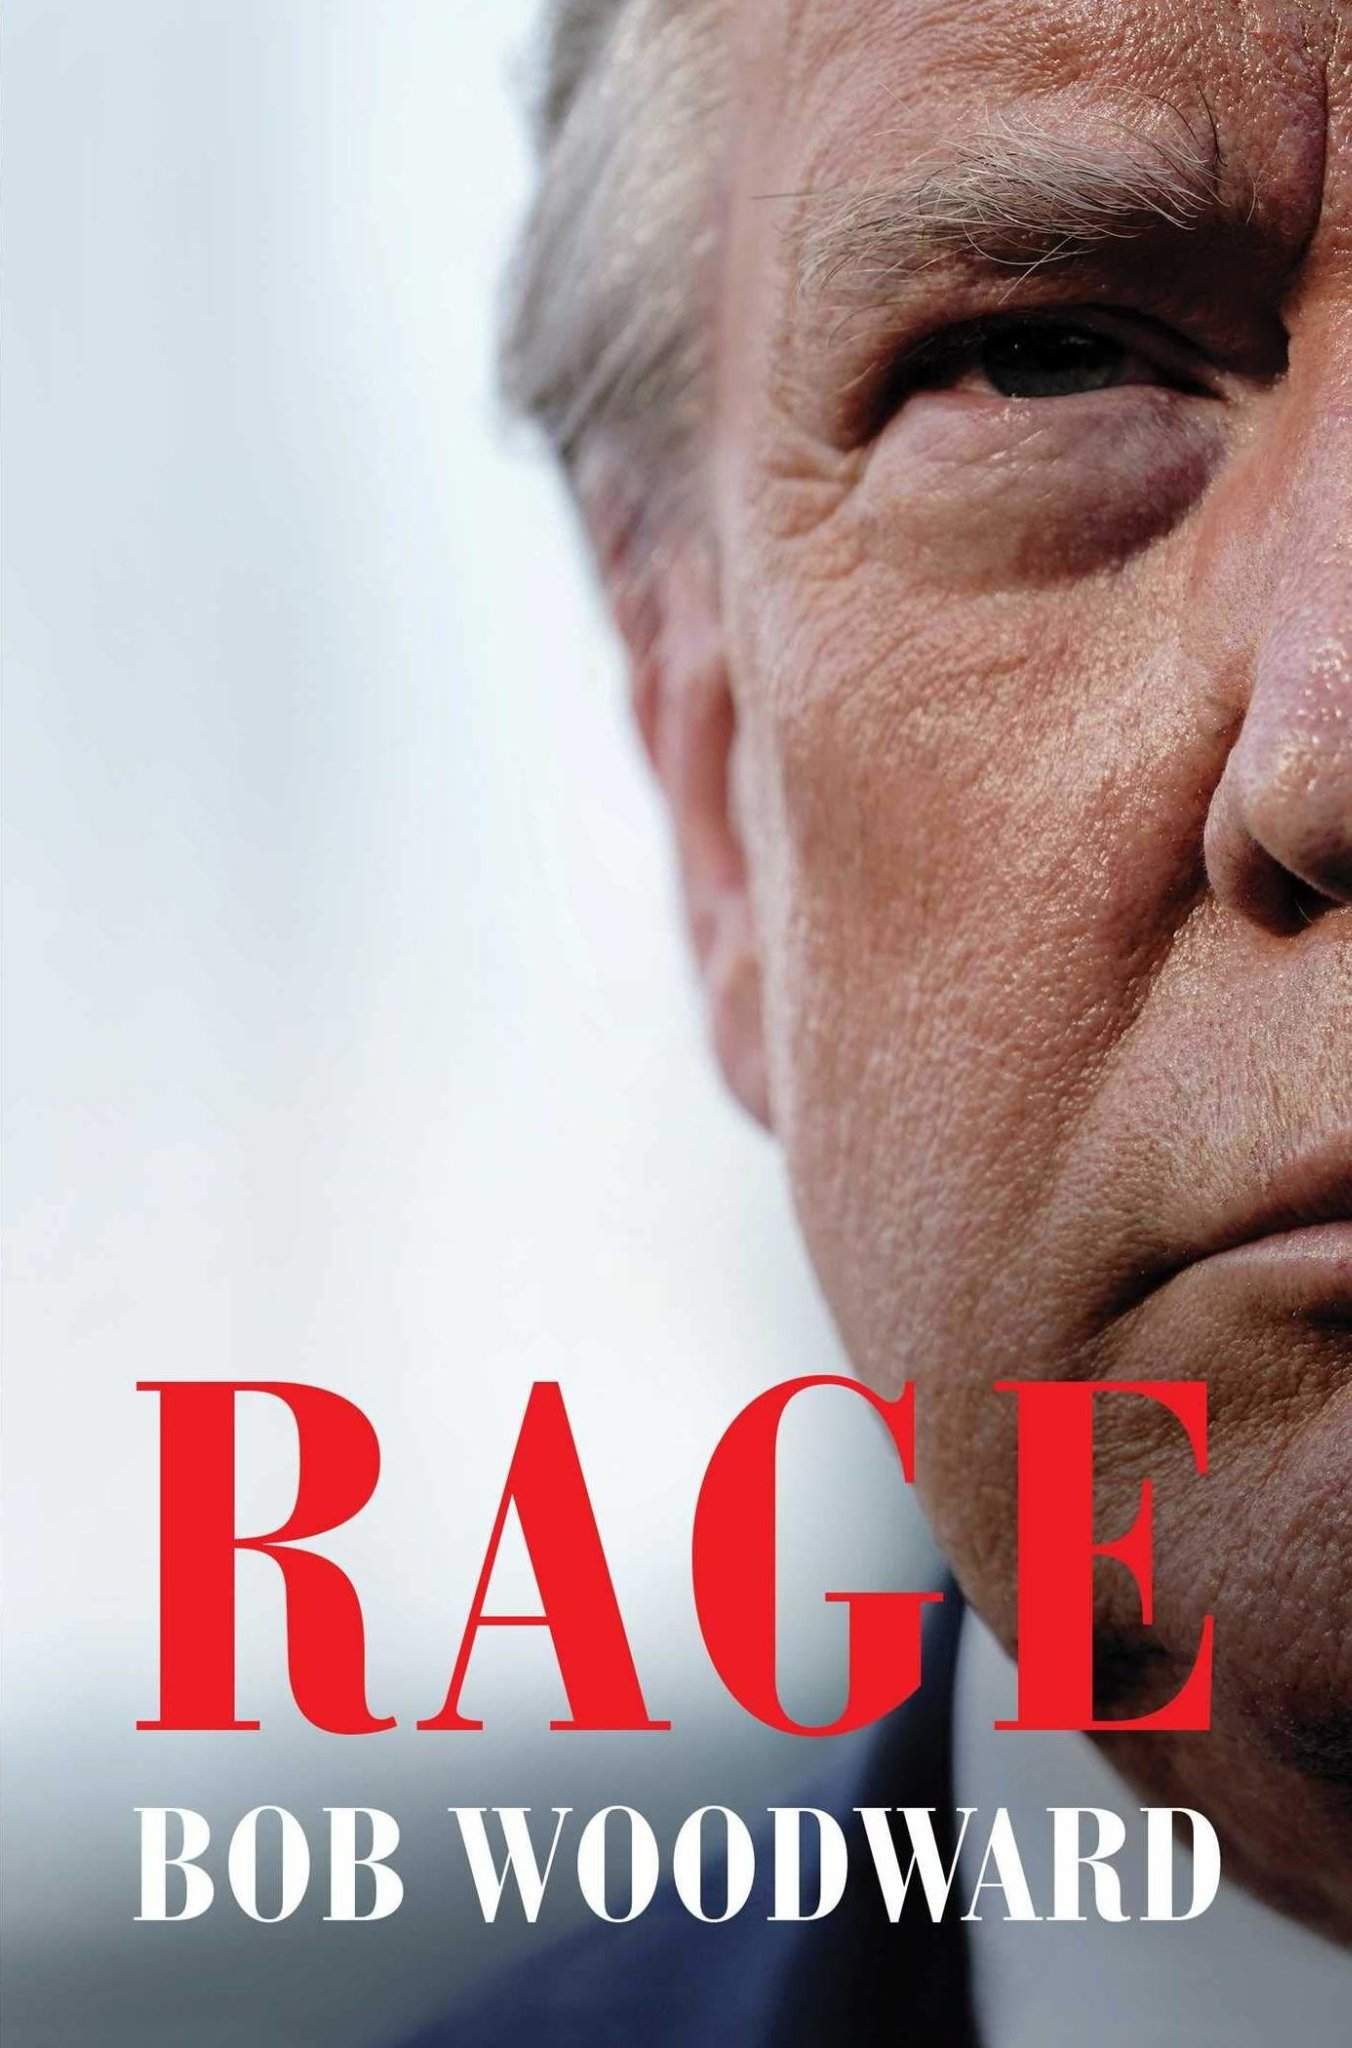 Can Tapes and Books Bring Down Trump Before November 3?